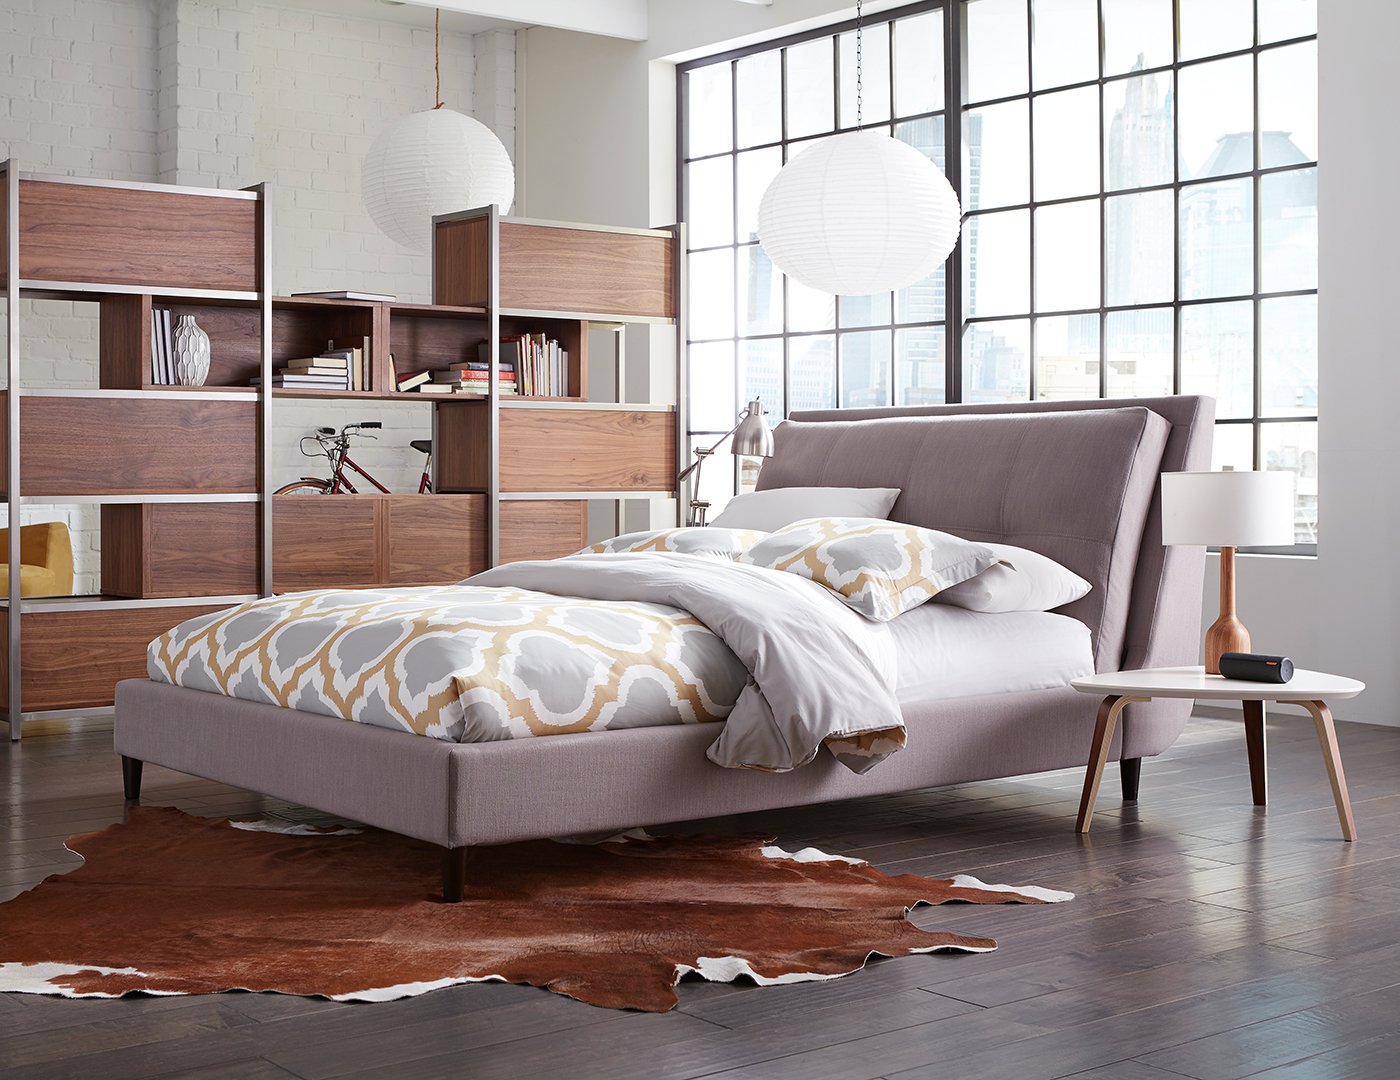 Skyler Queen Upholstered Bed